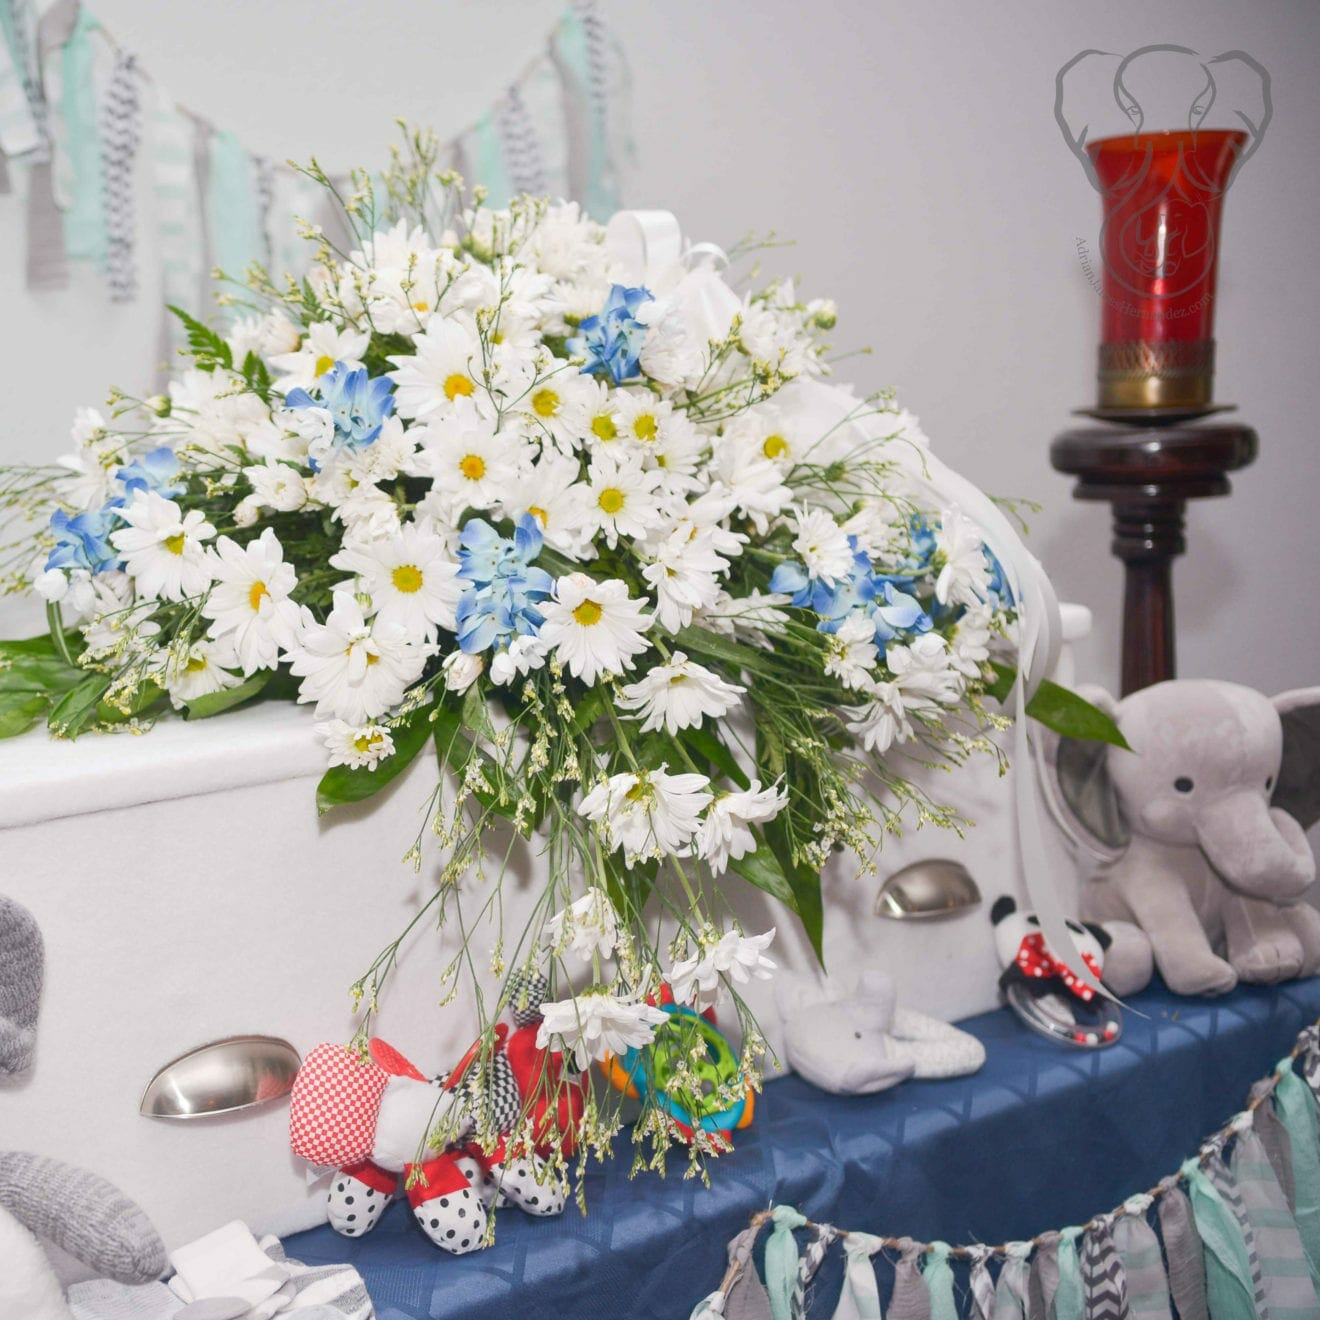 White child's casket covered in arrangement of white daisies and bluebonnets. There are children's toys in front of the casket (Modern Lux Photography)